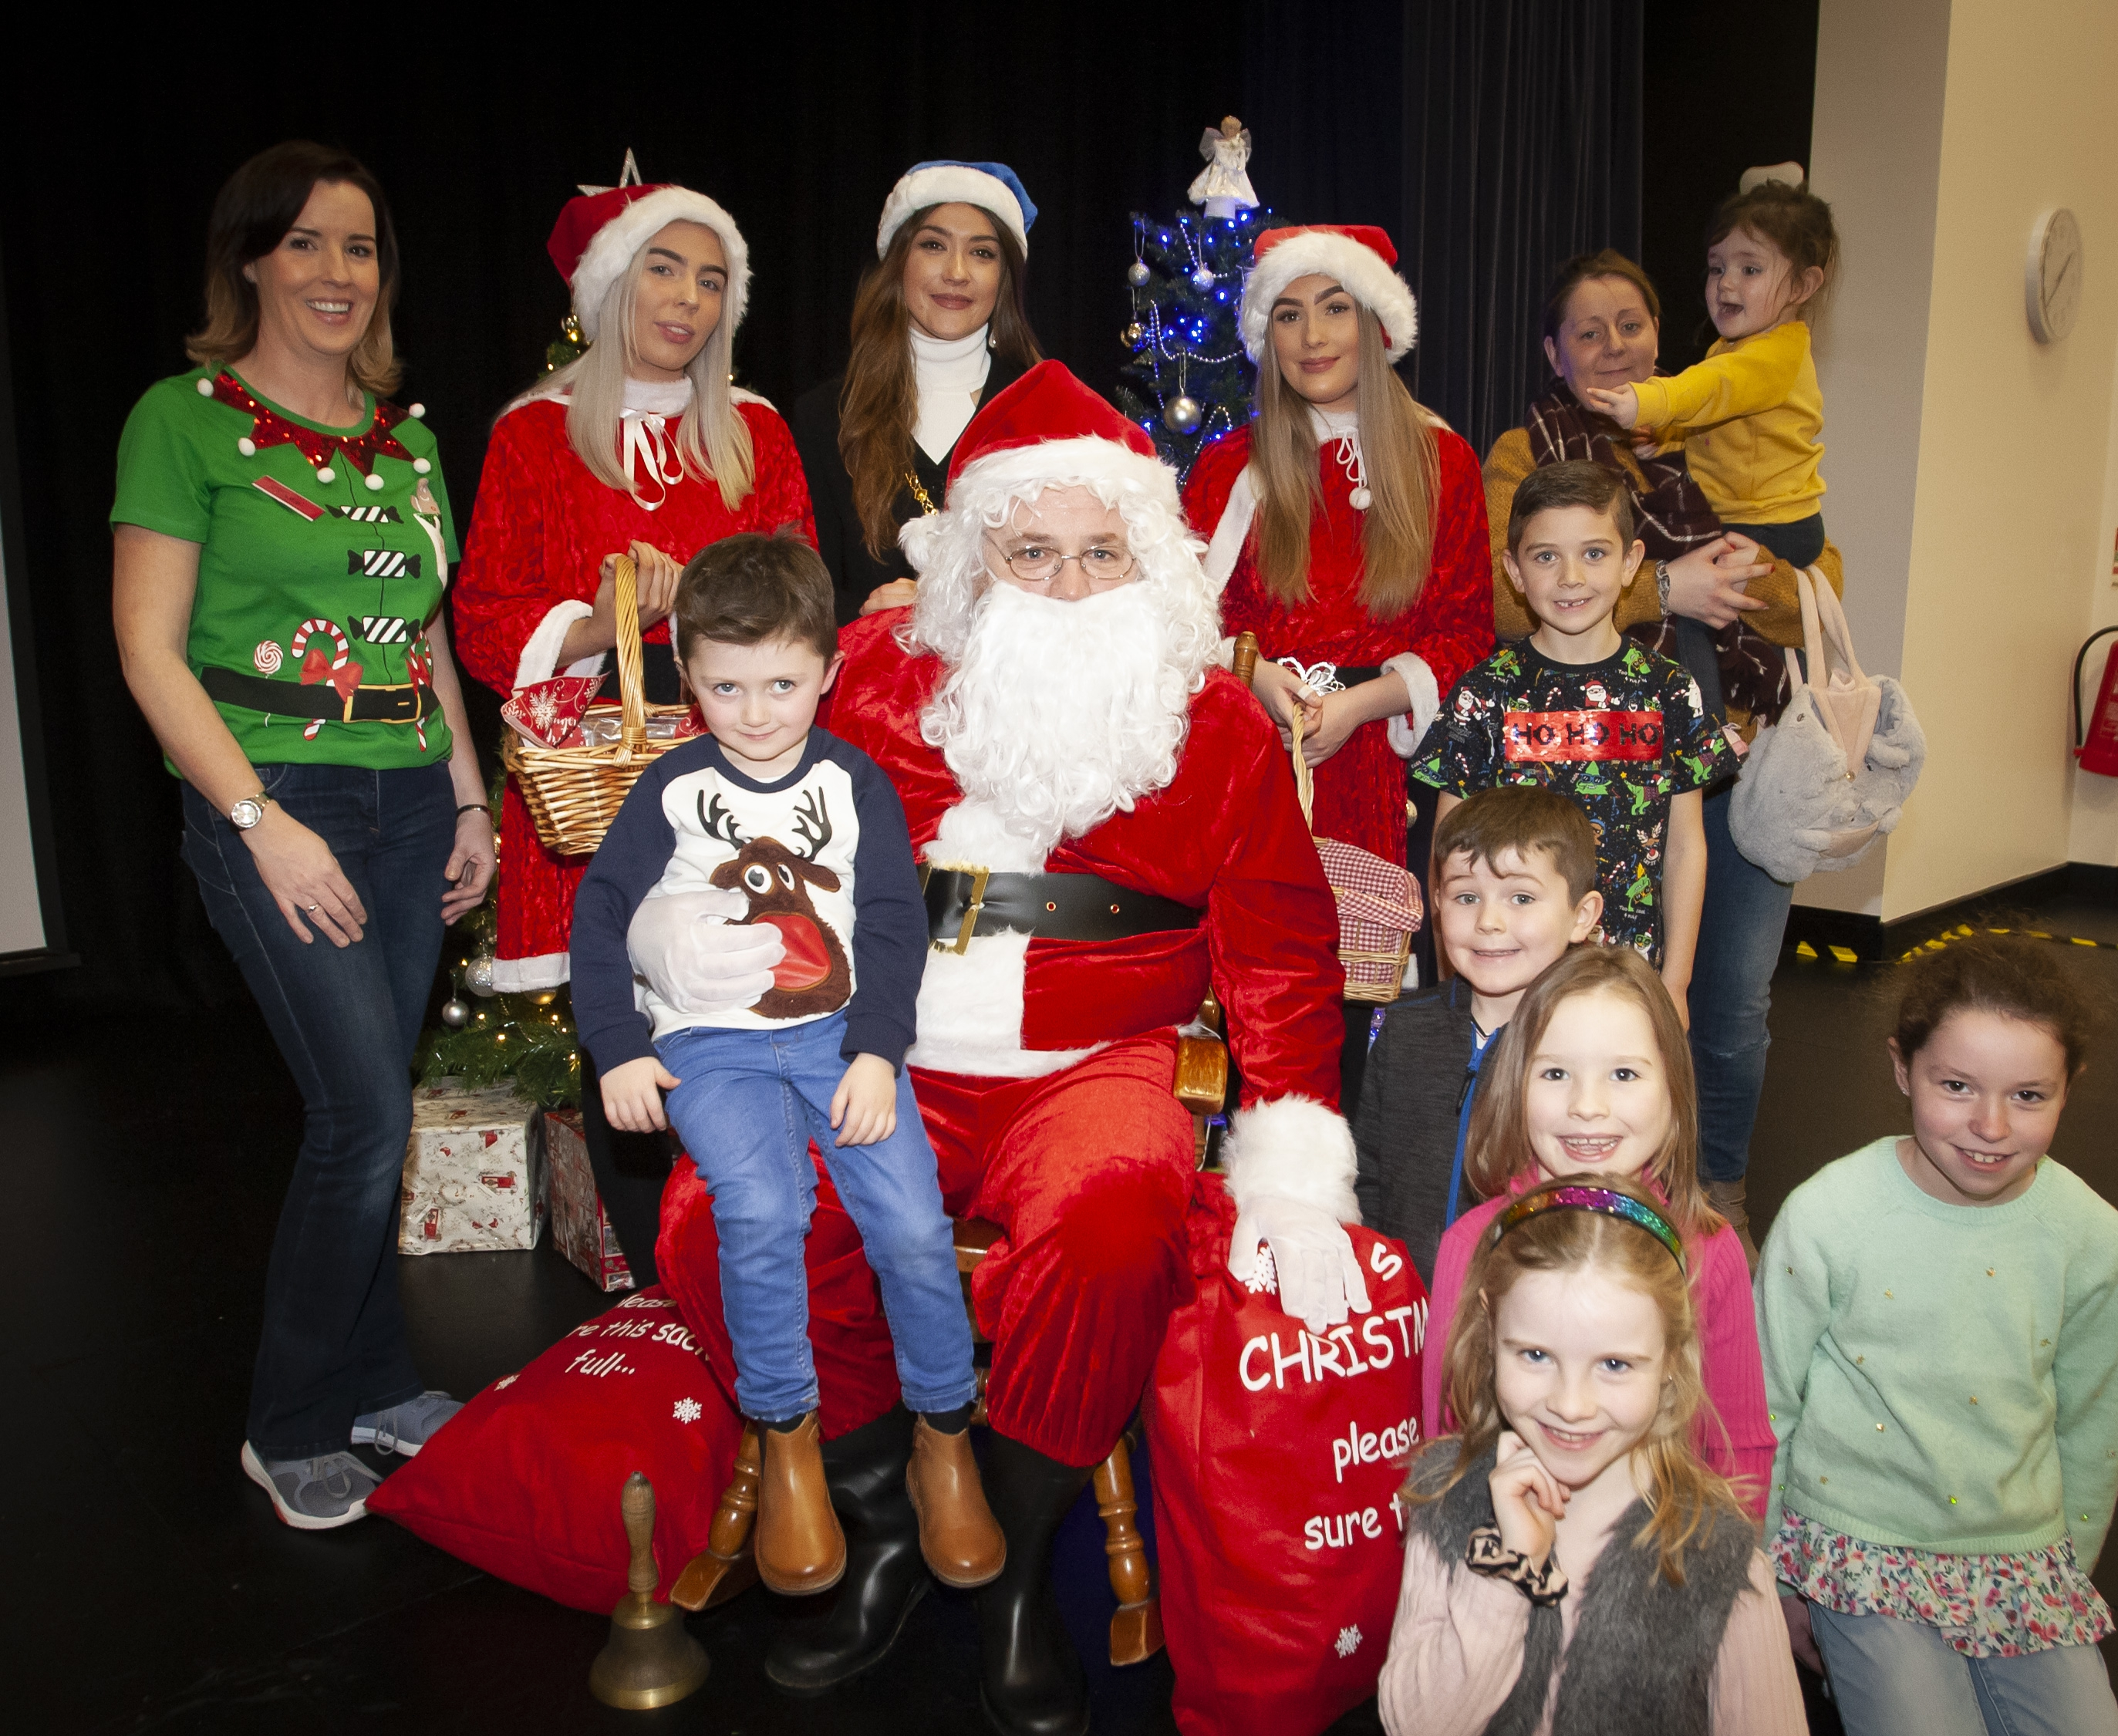 Santa Claus and the Deputy Mayor, Councillor Cara Hunter pictured with some of the children who attended Saturday's St. Mary's Annual Christmas Craft Fair at the school.